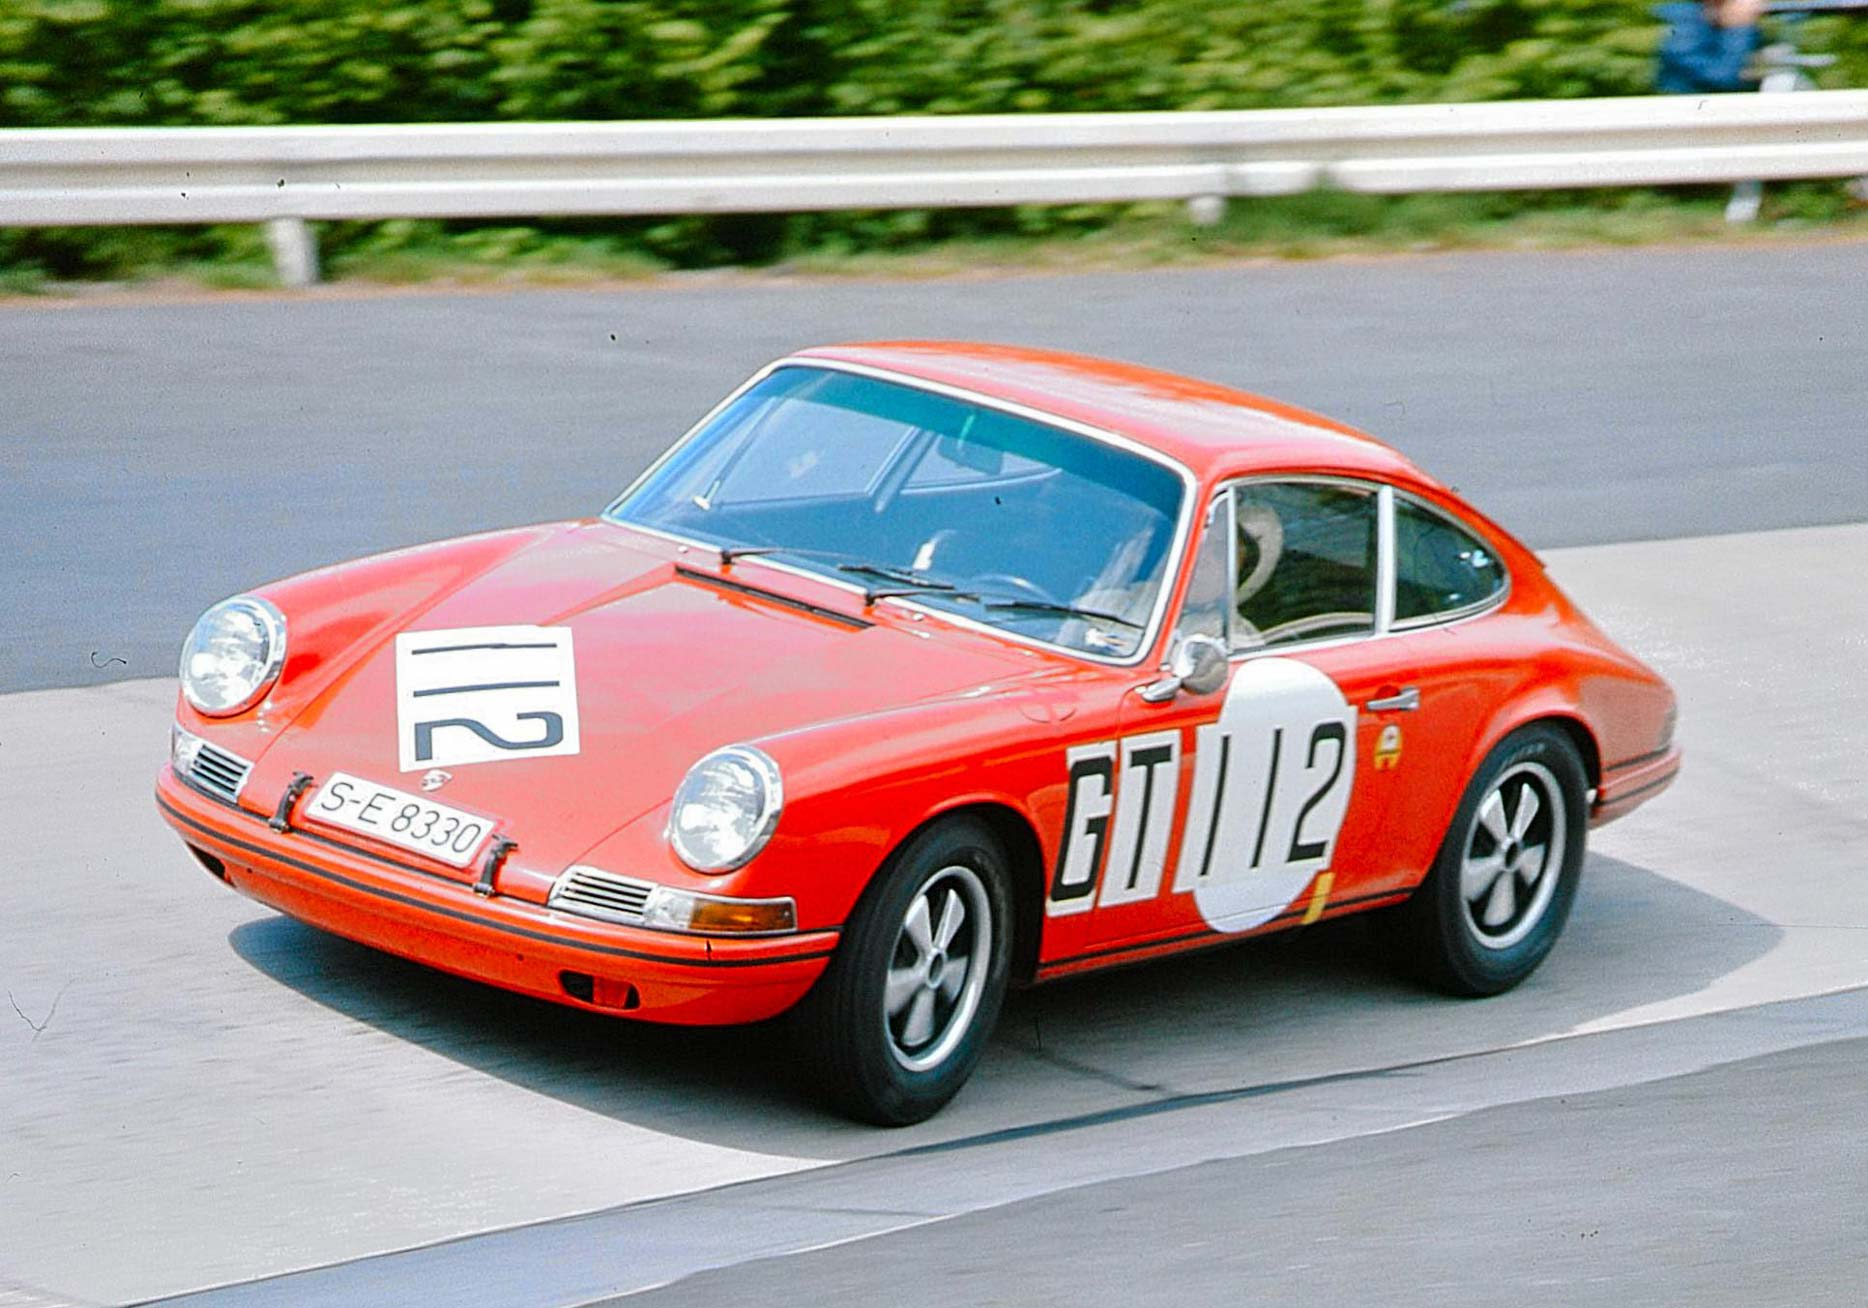 French skiing champion Jean-Claude Killy driving a 911T at the 1968 Nurburgring 1000k